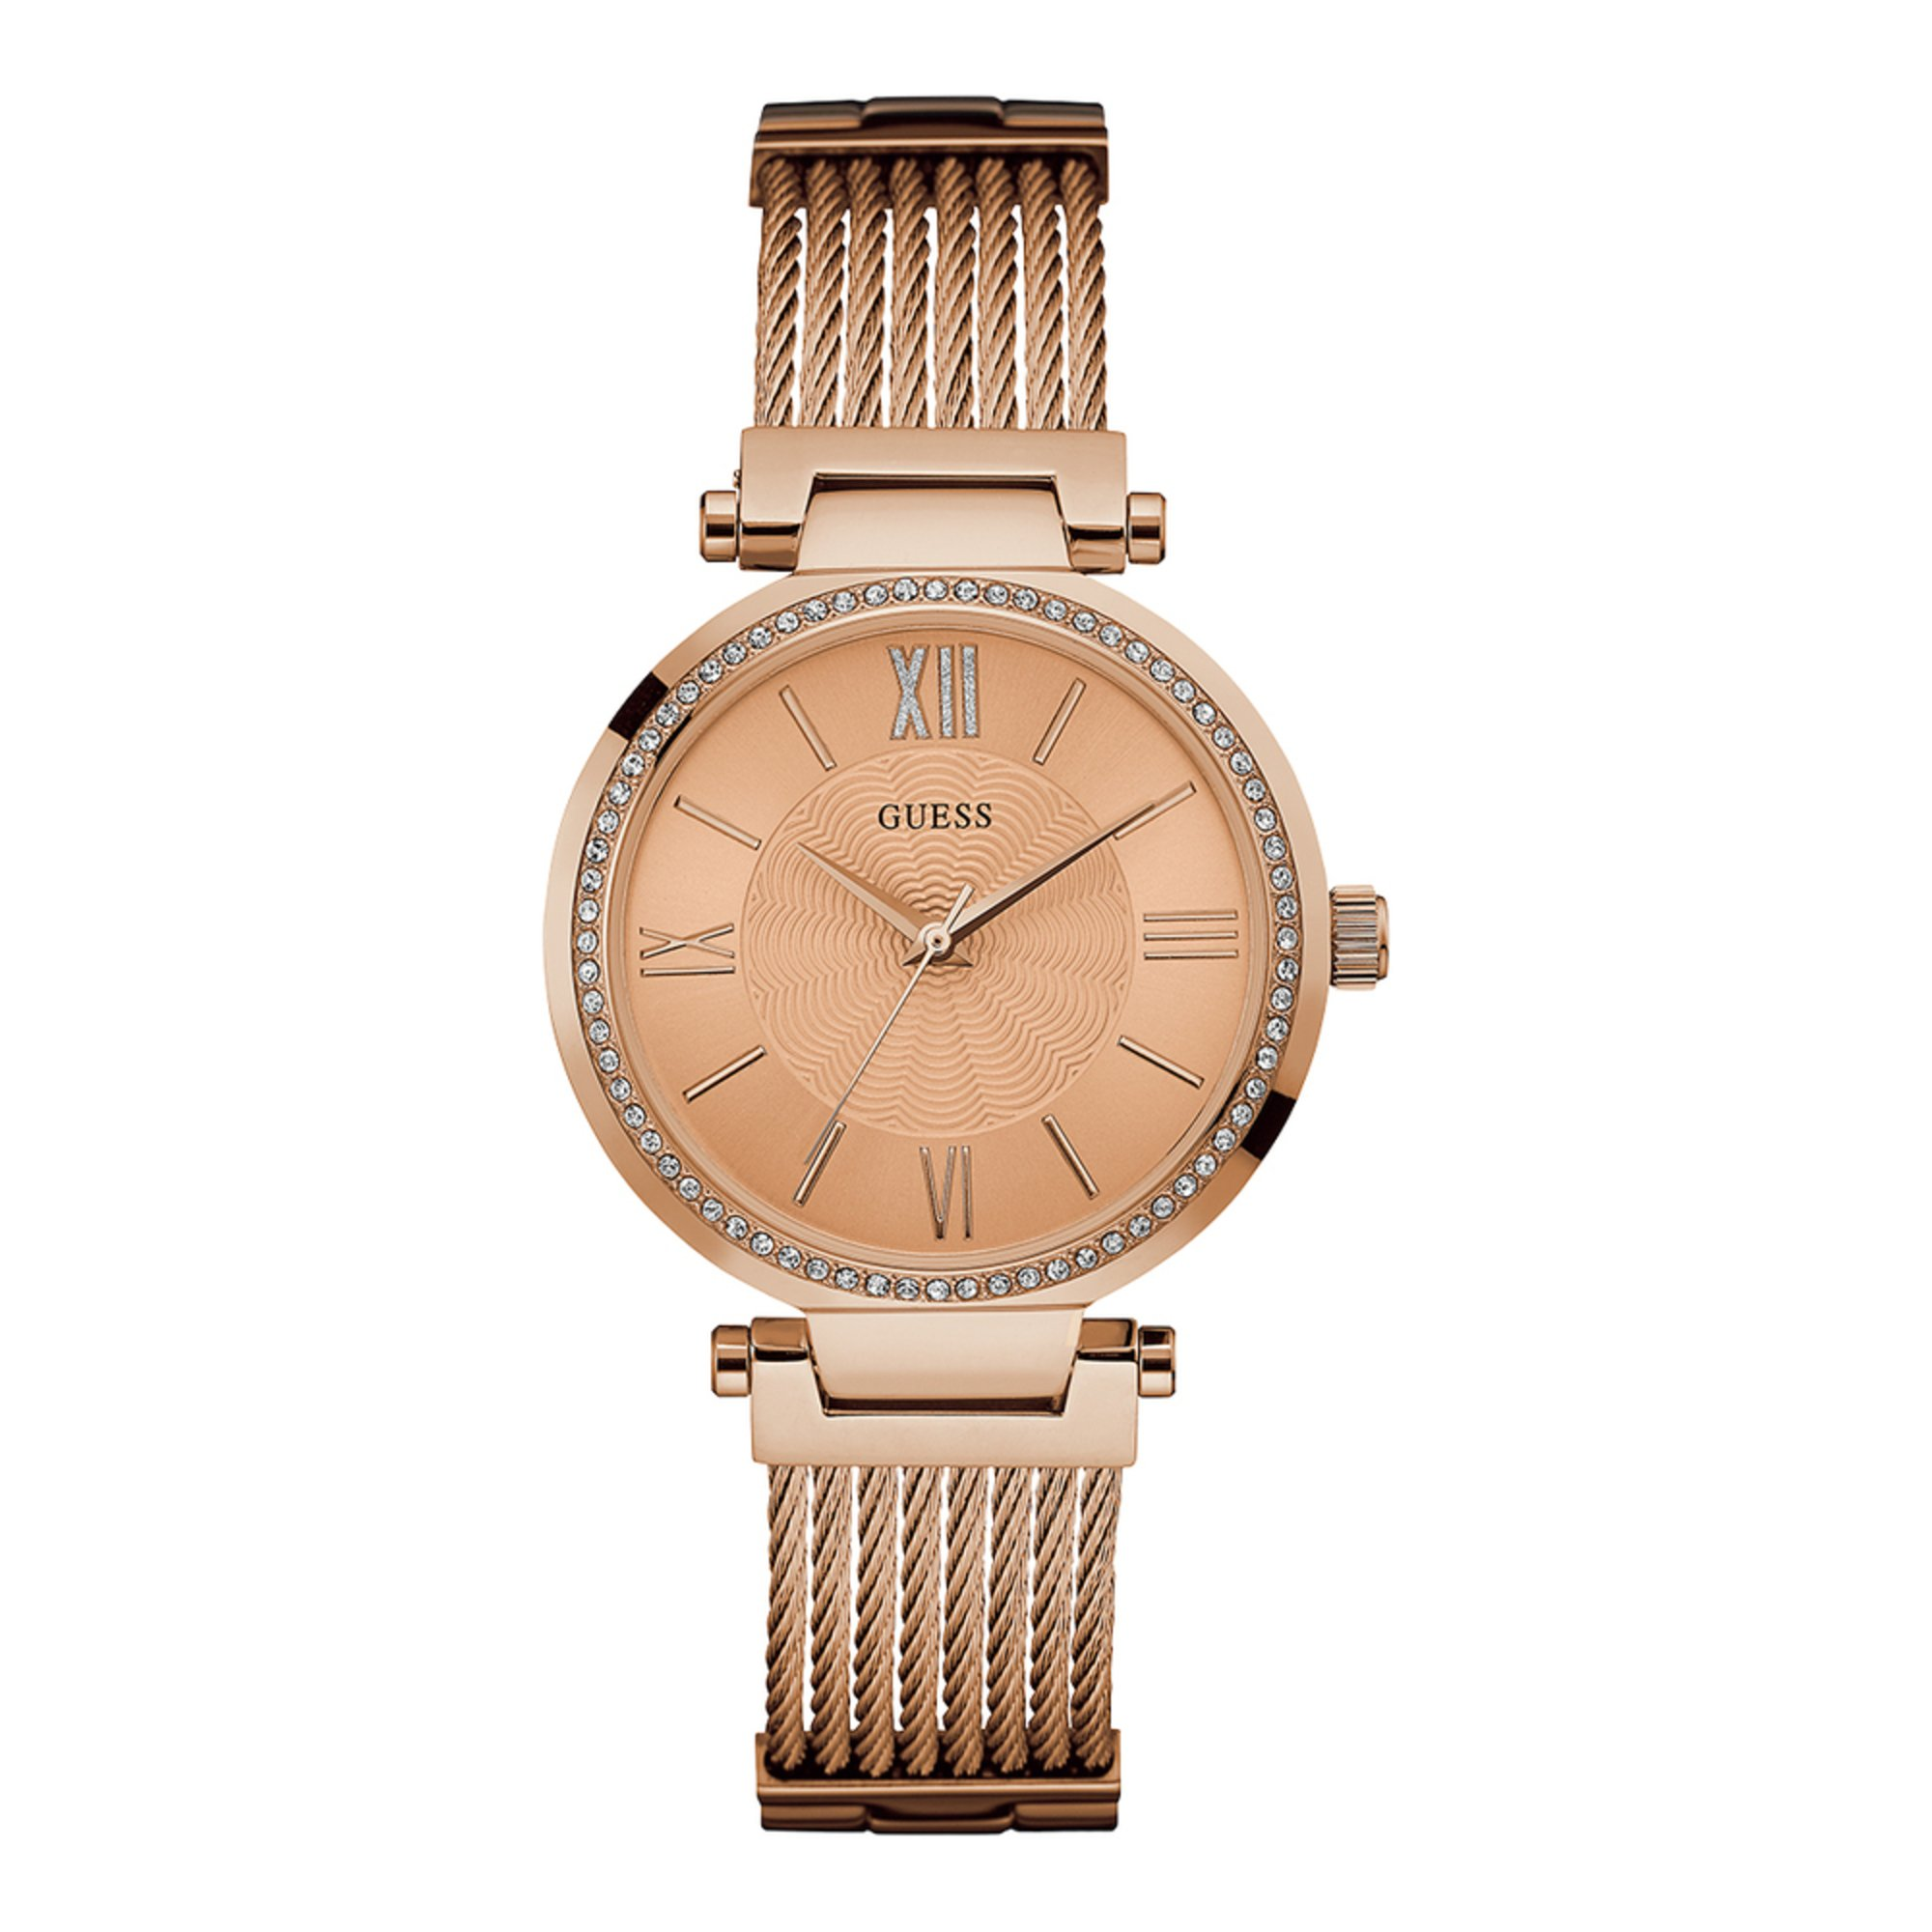 f249286850 Guess Women's Rose Gold Tone Stainless Steel Bracelet Watch, 34mm ...